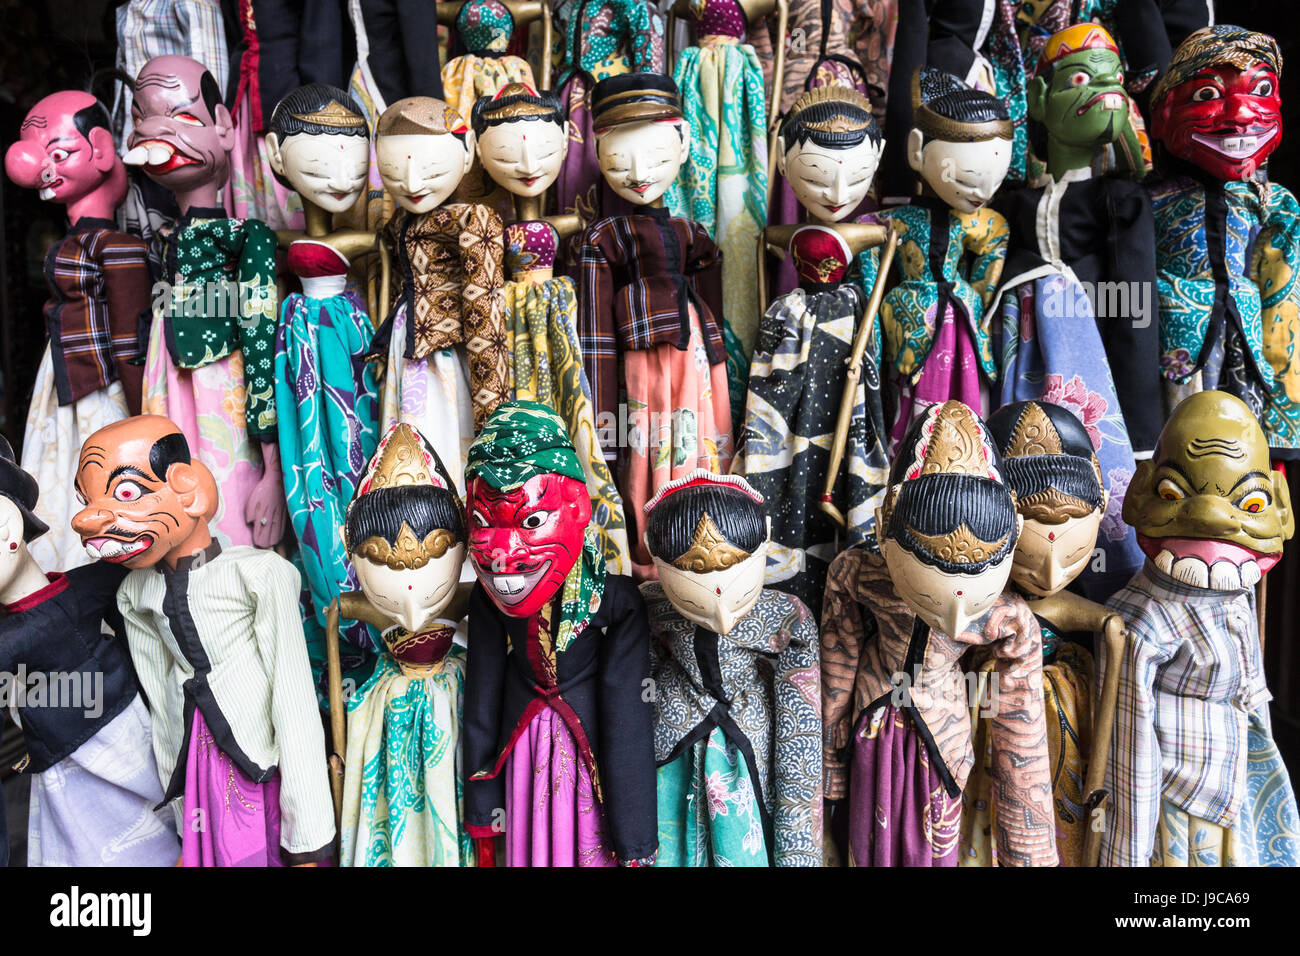 Traditional Javanese wooden puppets called Wayang display in the Jalan Surabaya flea market in Jakarta, Indonesia - Stock Image